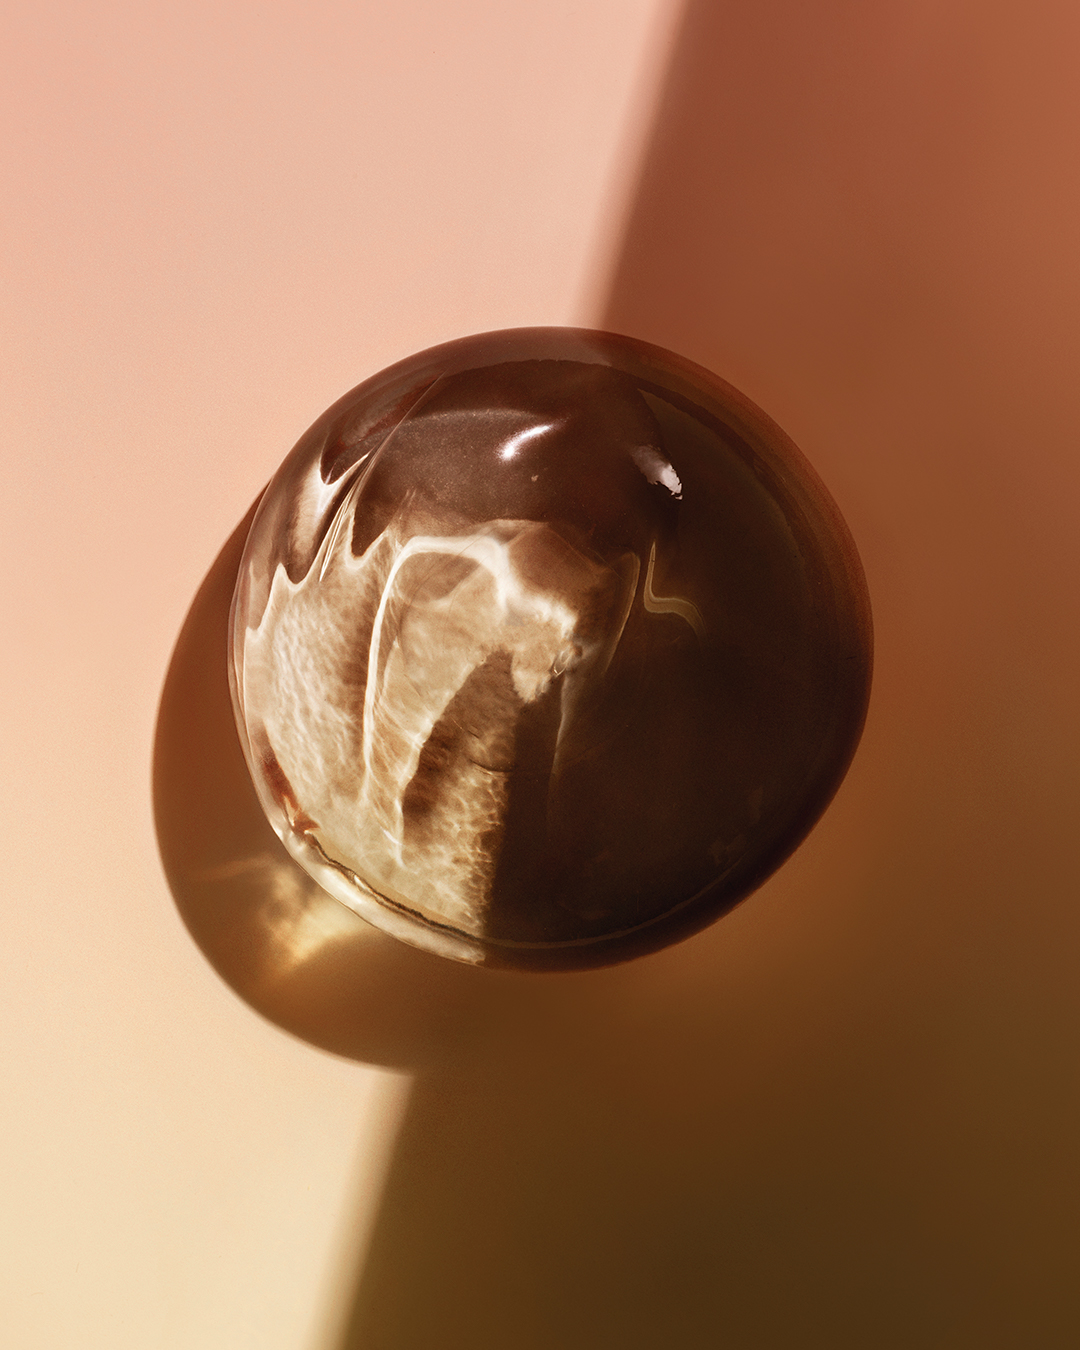 image of a silicone breast implant against a brown background